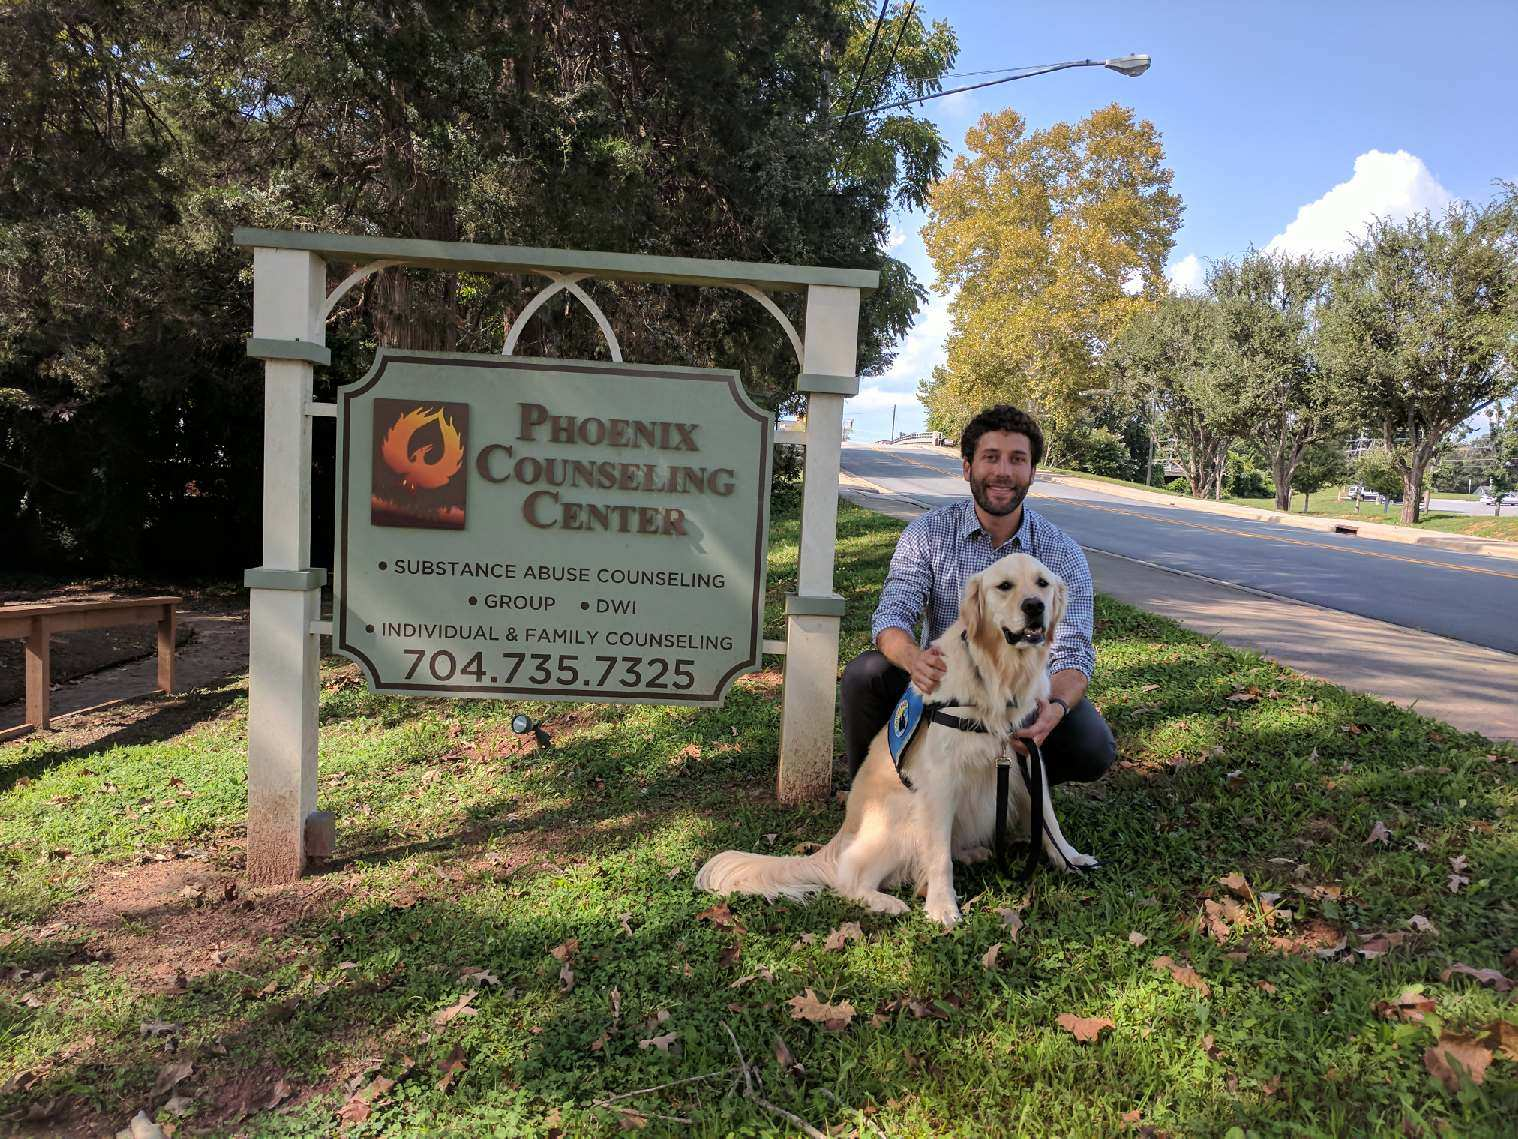 Considering adding an animal component to your treatment programs? There are lots of questions to consider and we are here to help. Please contact us for more information. -